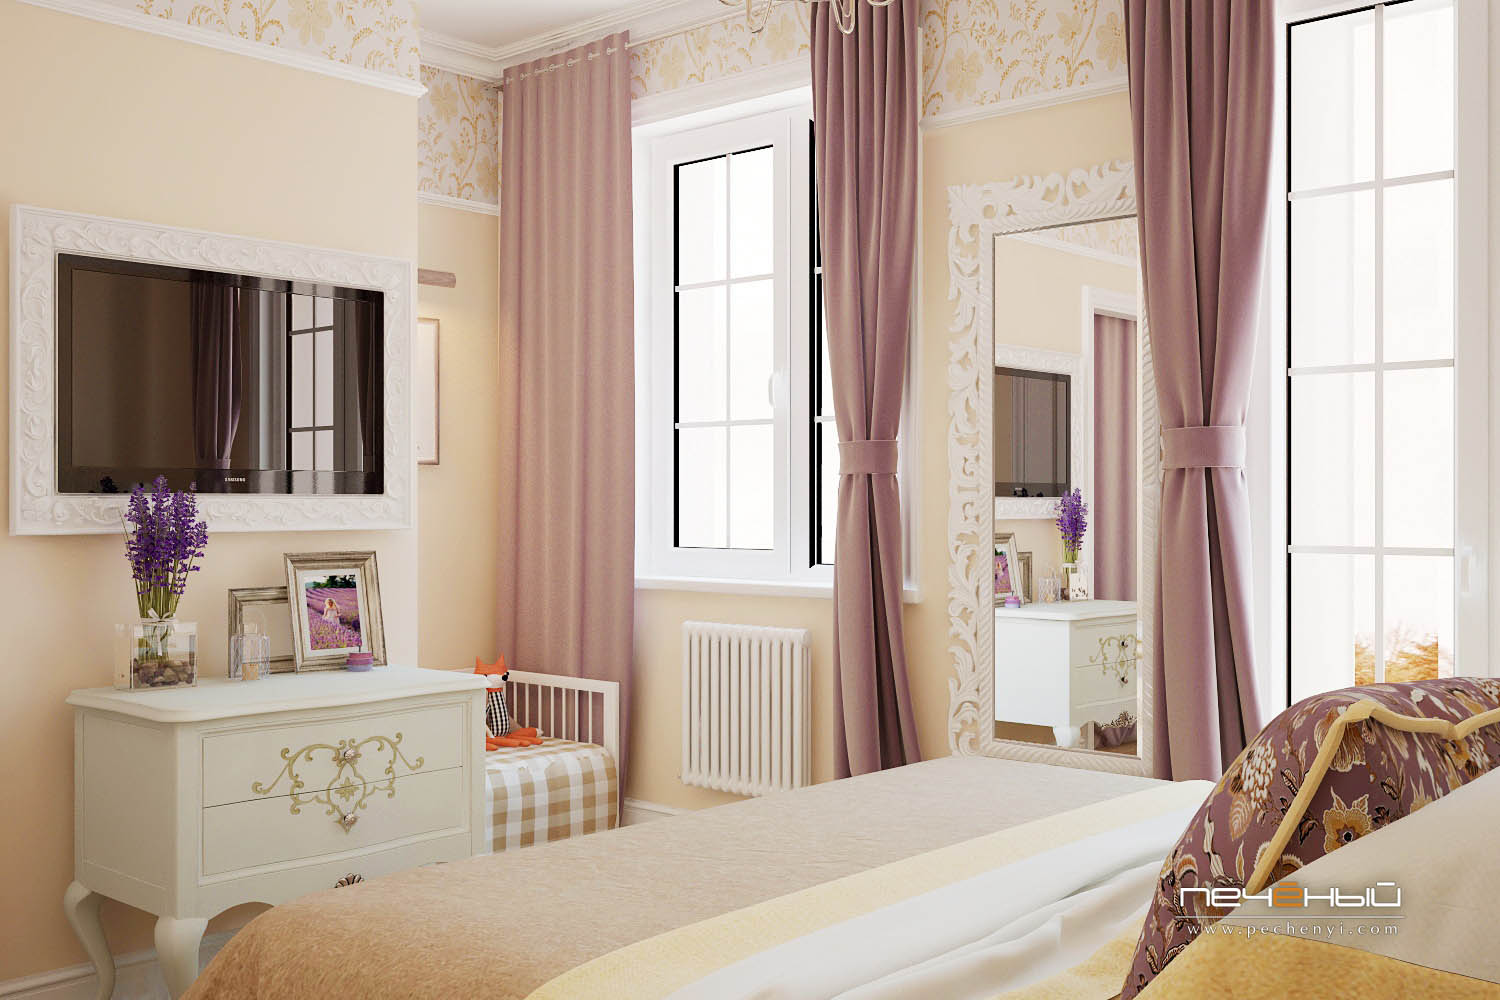 Refined furniture and frames and lots of light coming in turn this bedroom into perfection